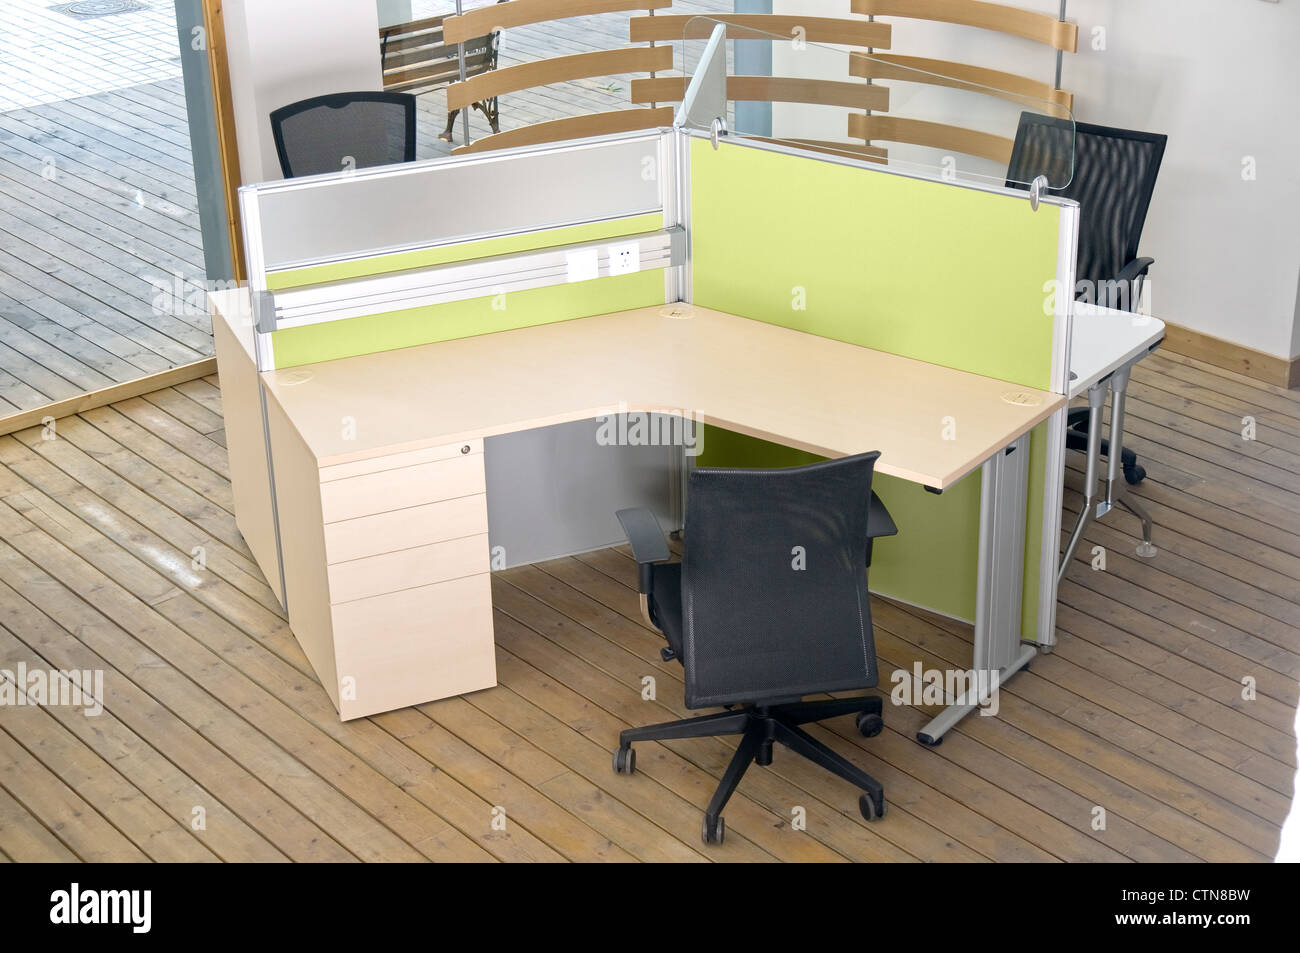 office desk cubicle. Office Desks And Black Chairs Cubicle Set View From Top Over Wood Flooring Desk N